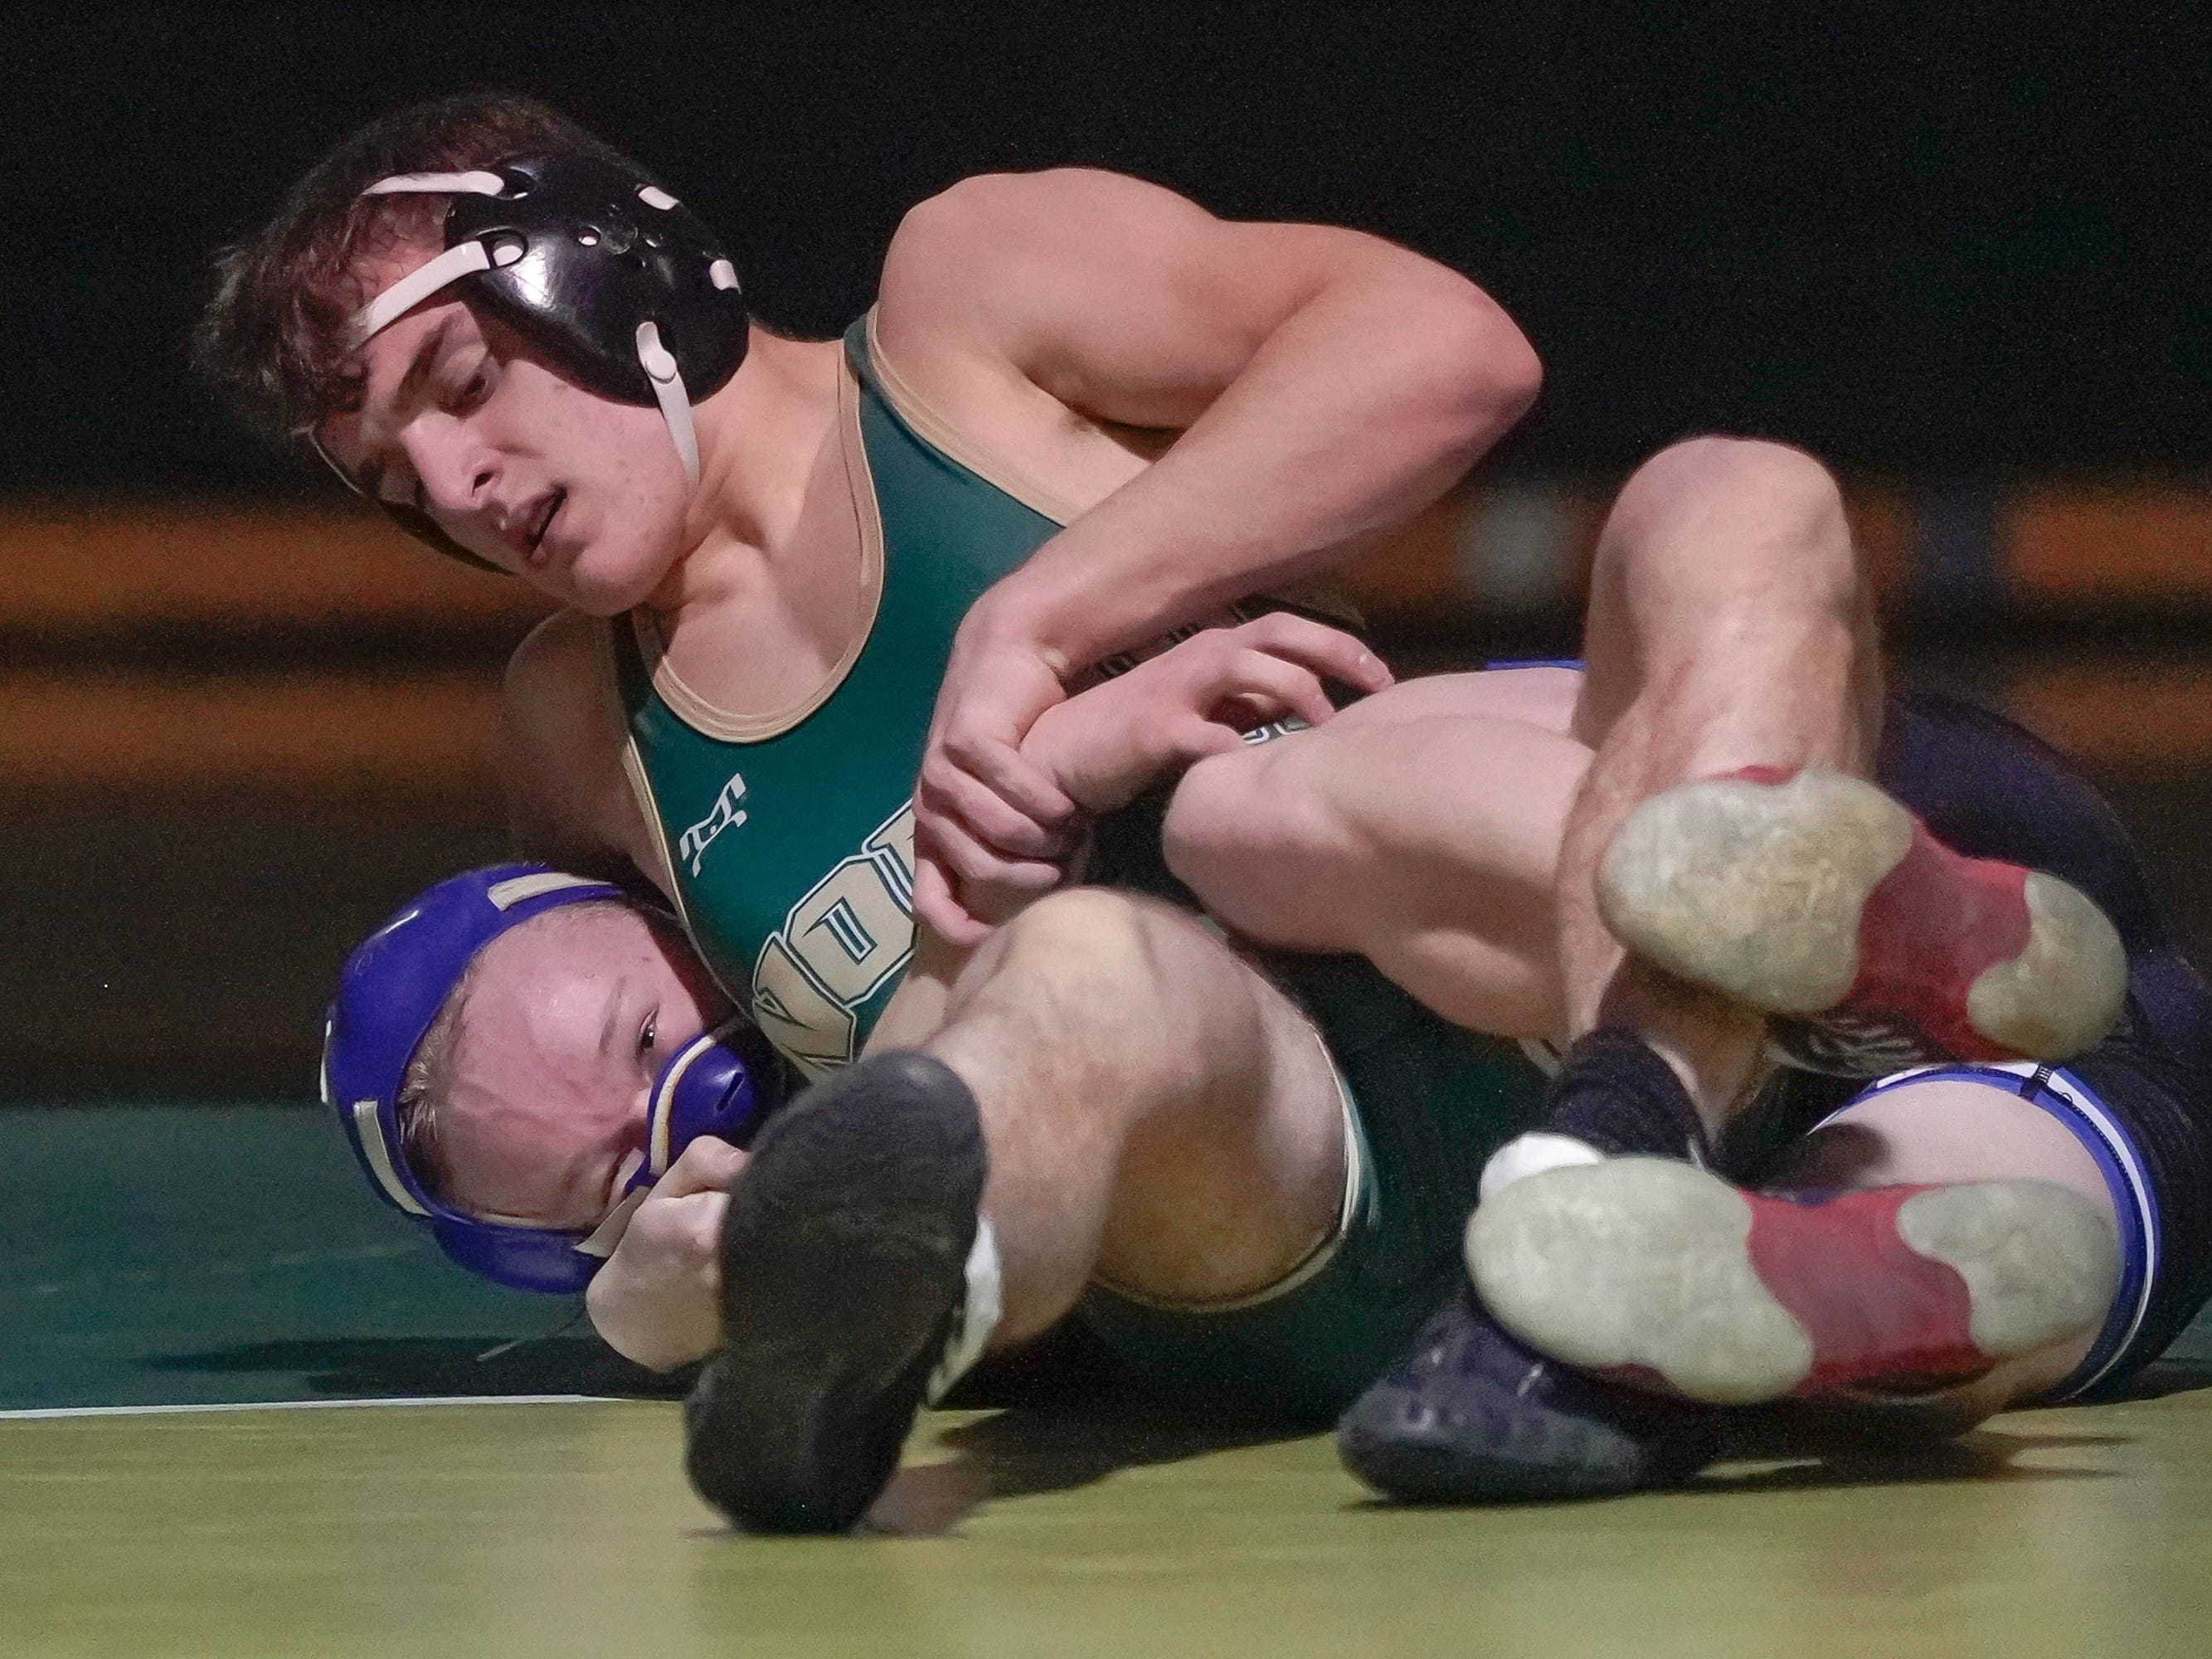 Landon Spanbauer of Oshkosh North and Carson Hollis of Oshkosh West wrestle in the 145-pound weight class. The Oshkosh North Spartans hosted the Oshkosh West Wildcats in a Fox Valley Association wrestling match Thursday evening, January 17, 2019.